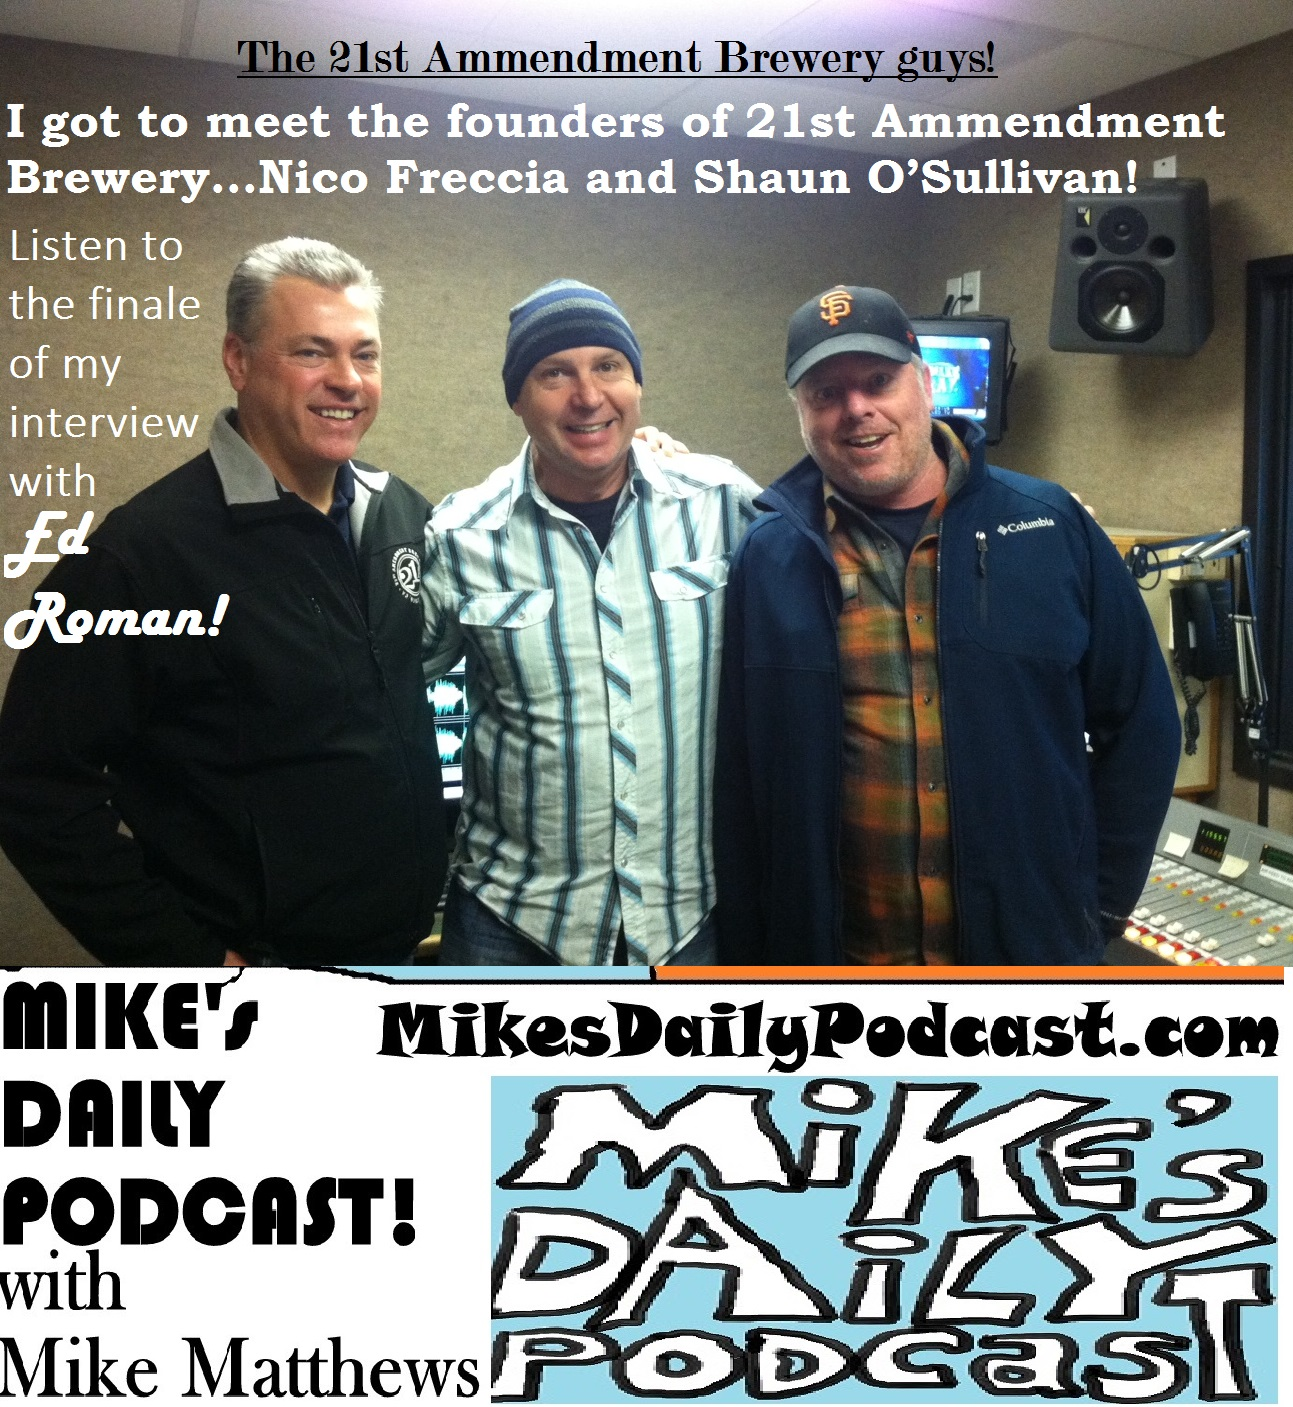 MIKEs DAILY PODCAST 982 21st Amendment Guys